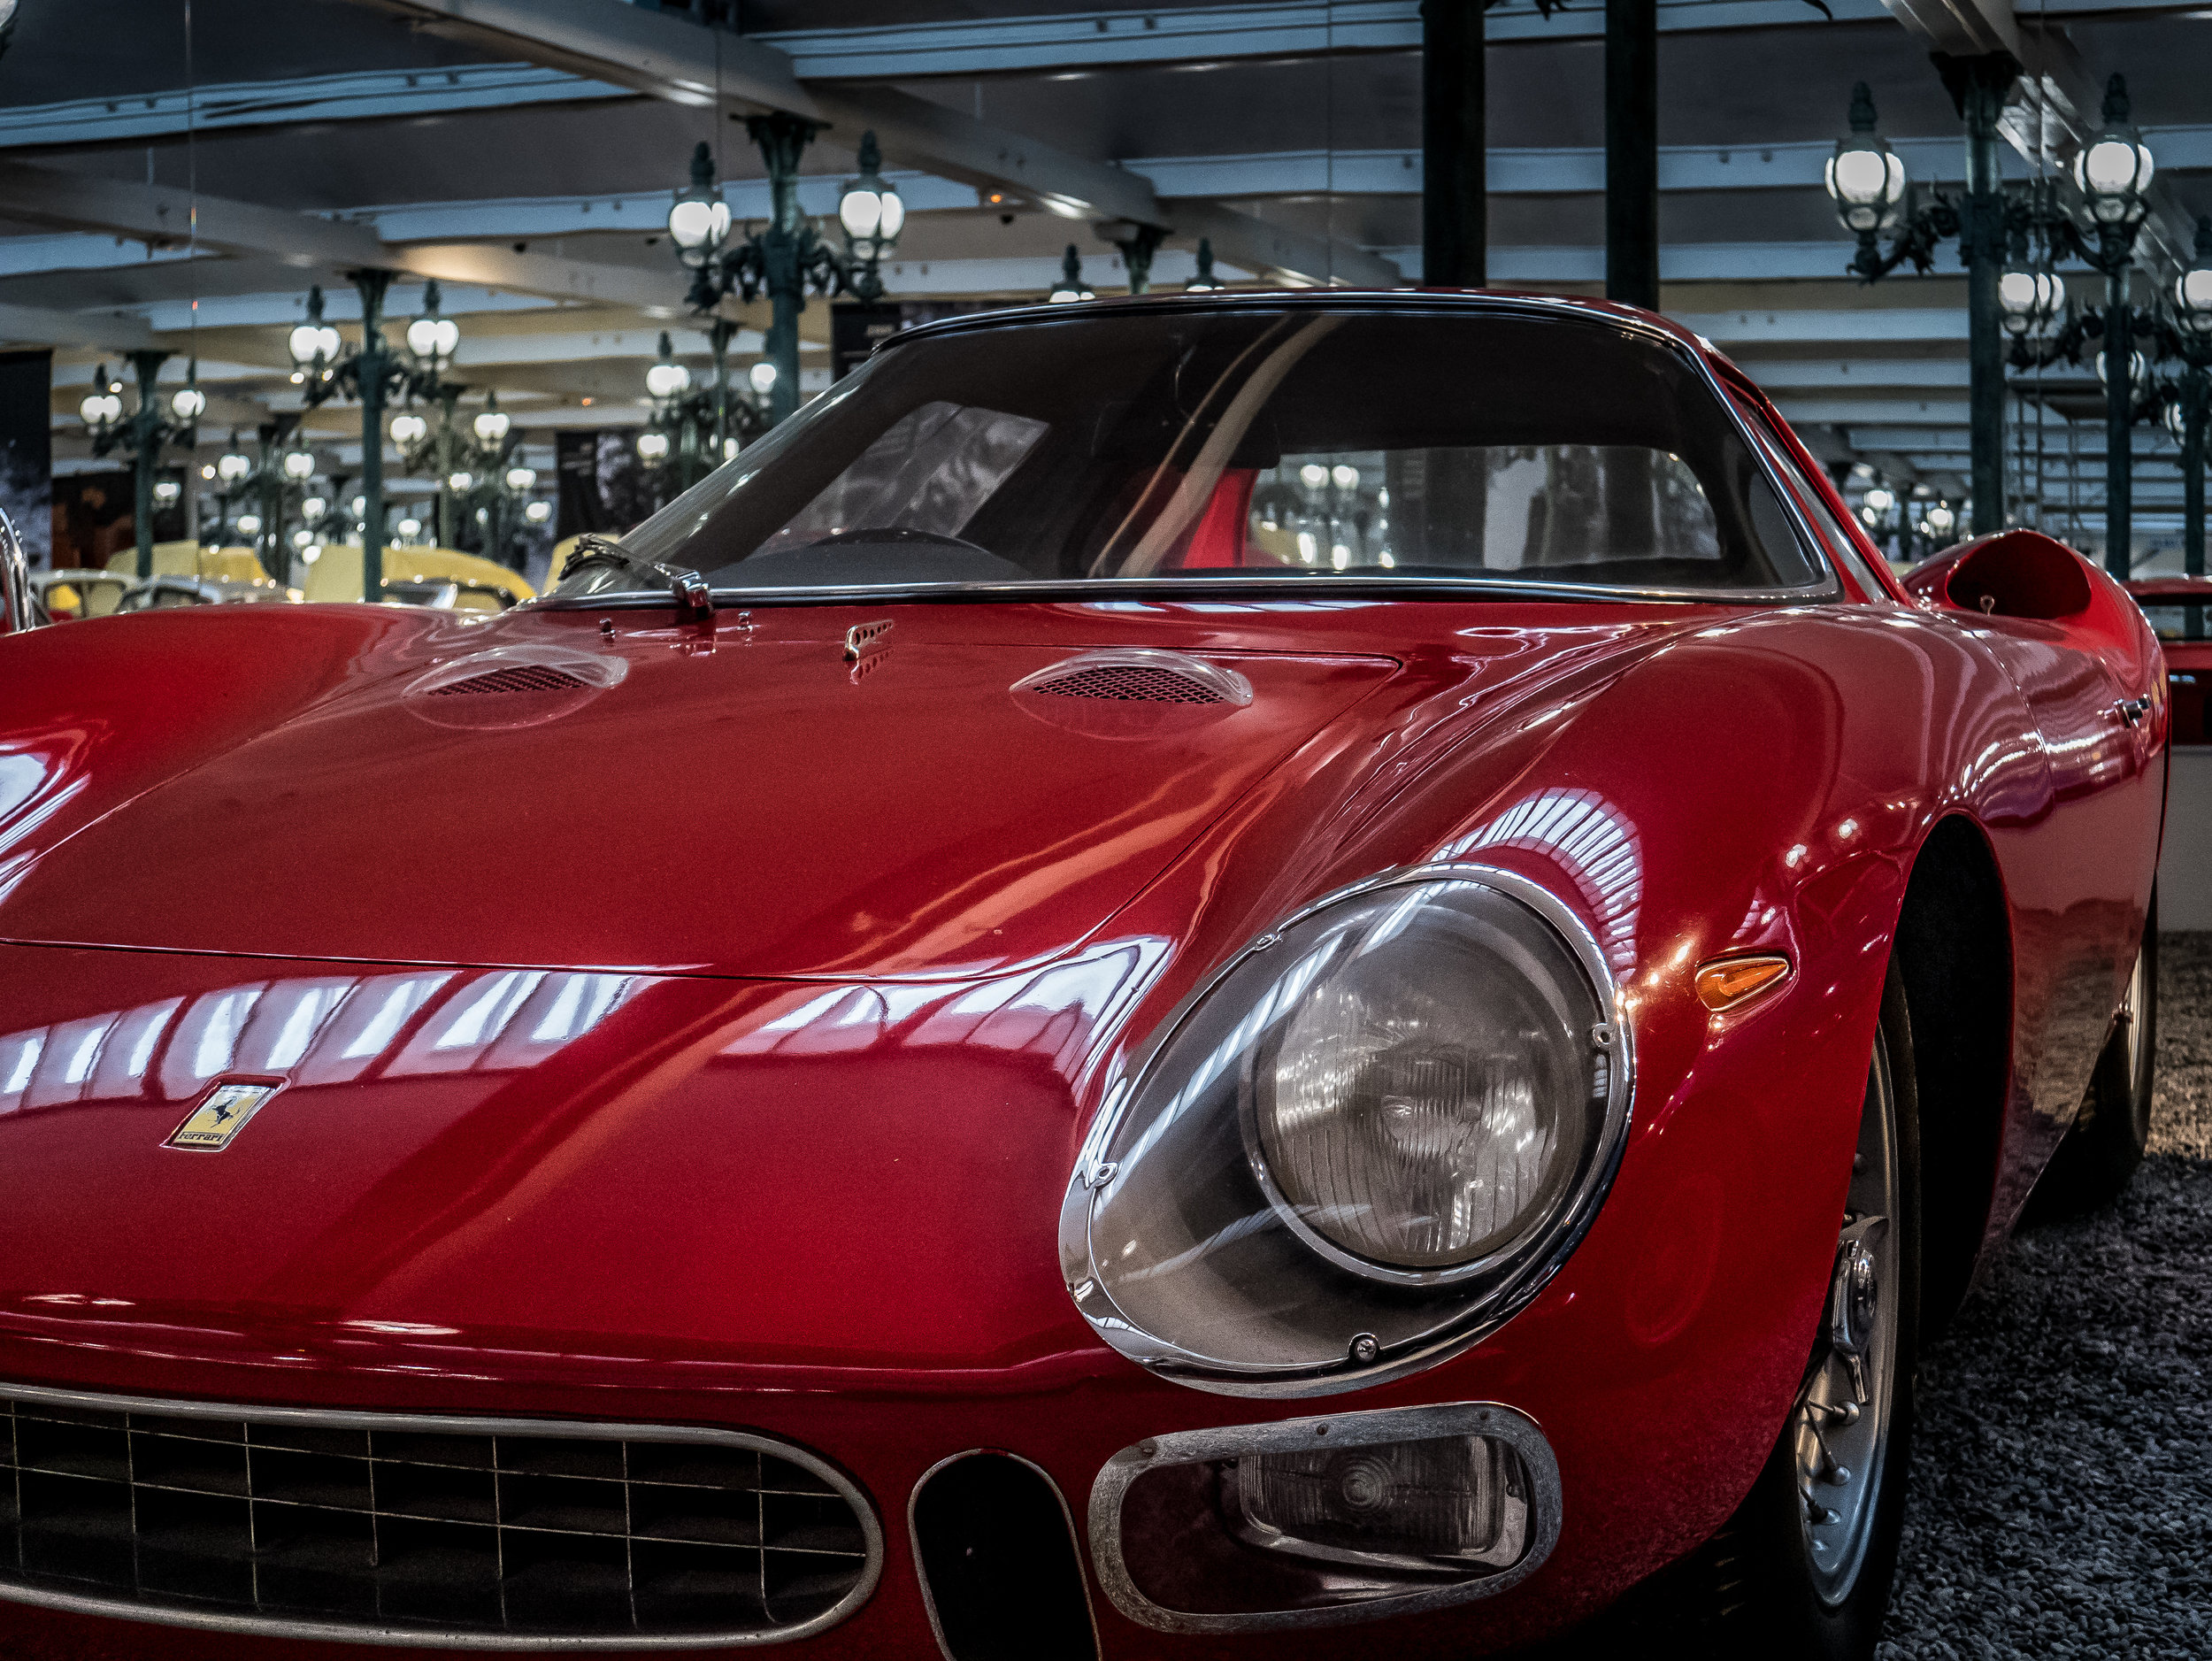 Ferrari Type 250 LM (1964) displayed in the main room of the Schlumpf collection (Credit: Nicolai Rauser)